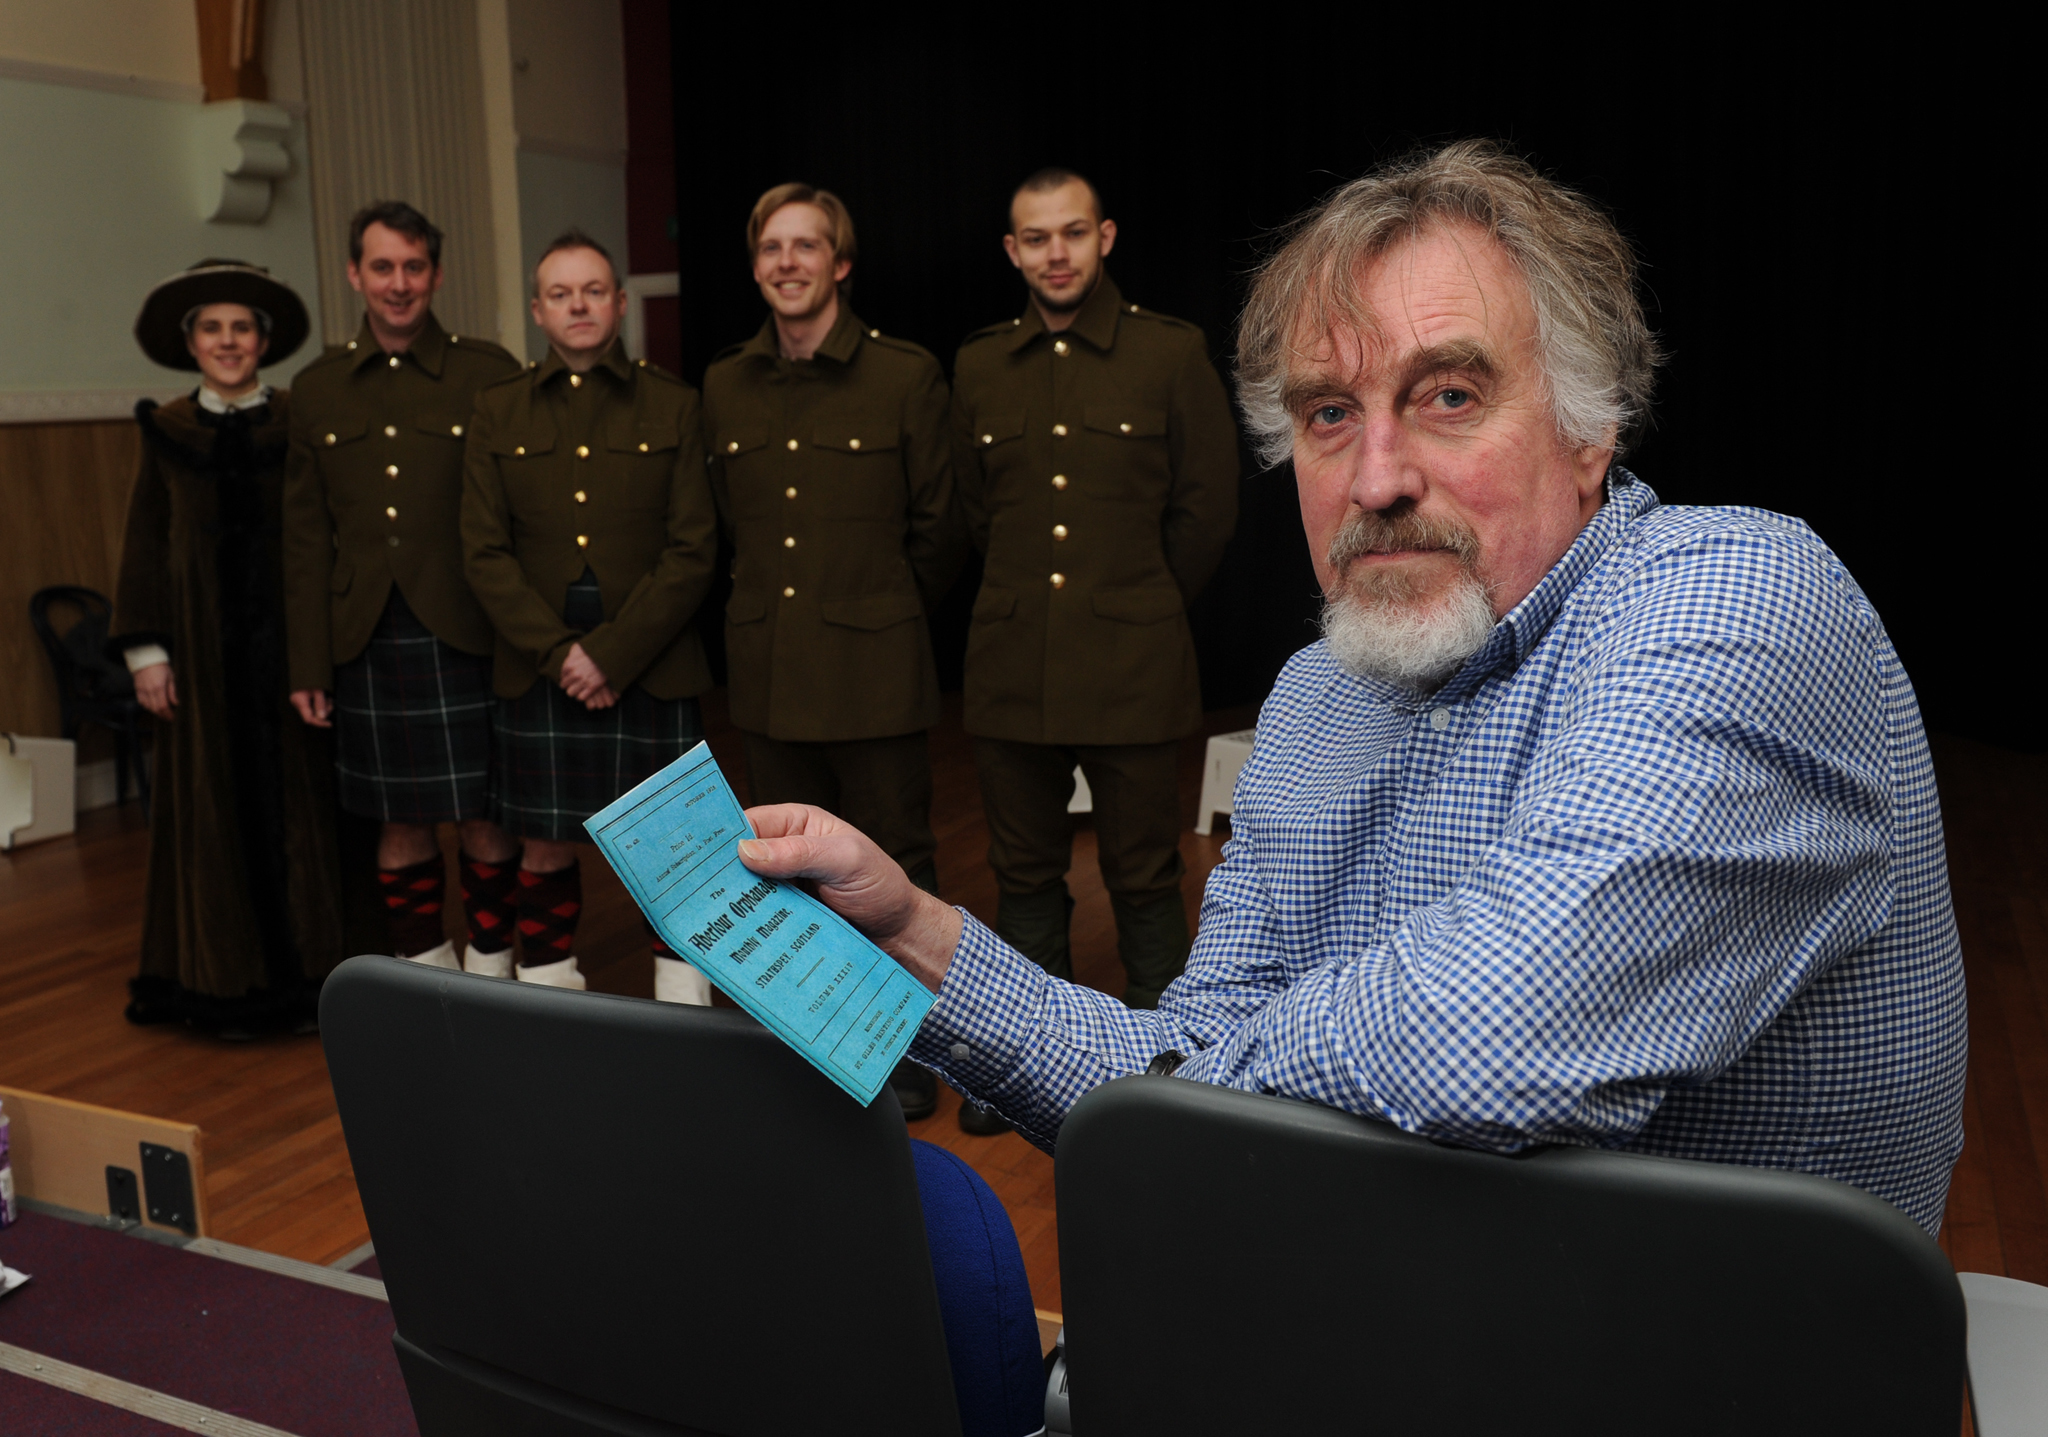 Letters to Aberlour is a new theatre production by New Strides Theatre which draws upon the letters that 'old boys' from the Aberlour Orphanage wrote to the orphanage during the First World War. The play is written by Coldinghams James Urquhart